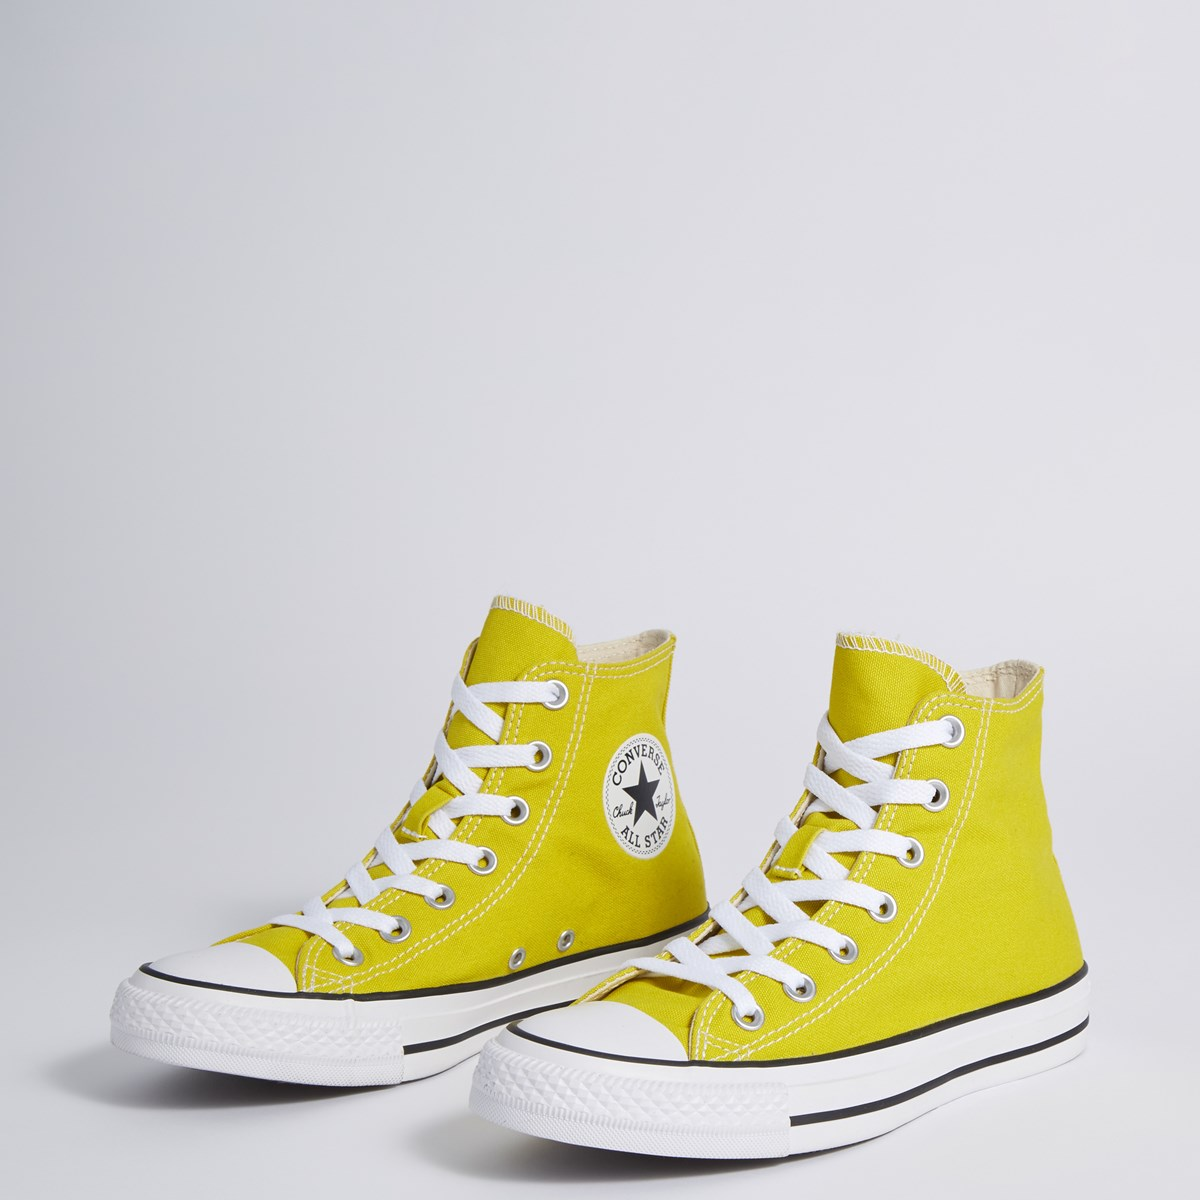 Women's Chuck Taylor All Star High-top Sneakers in Yellow